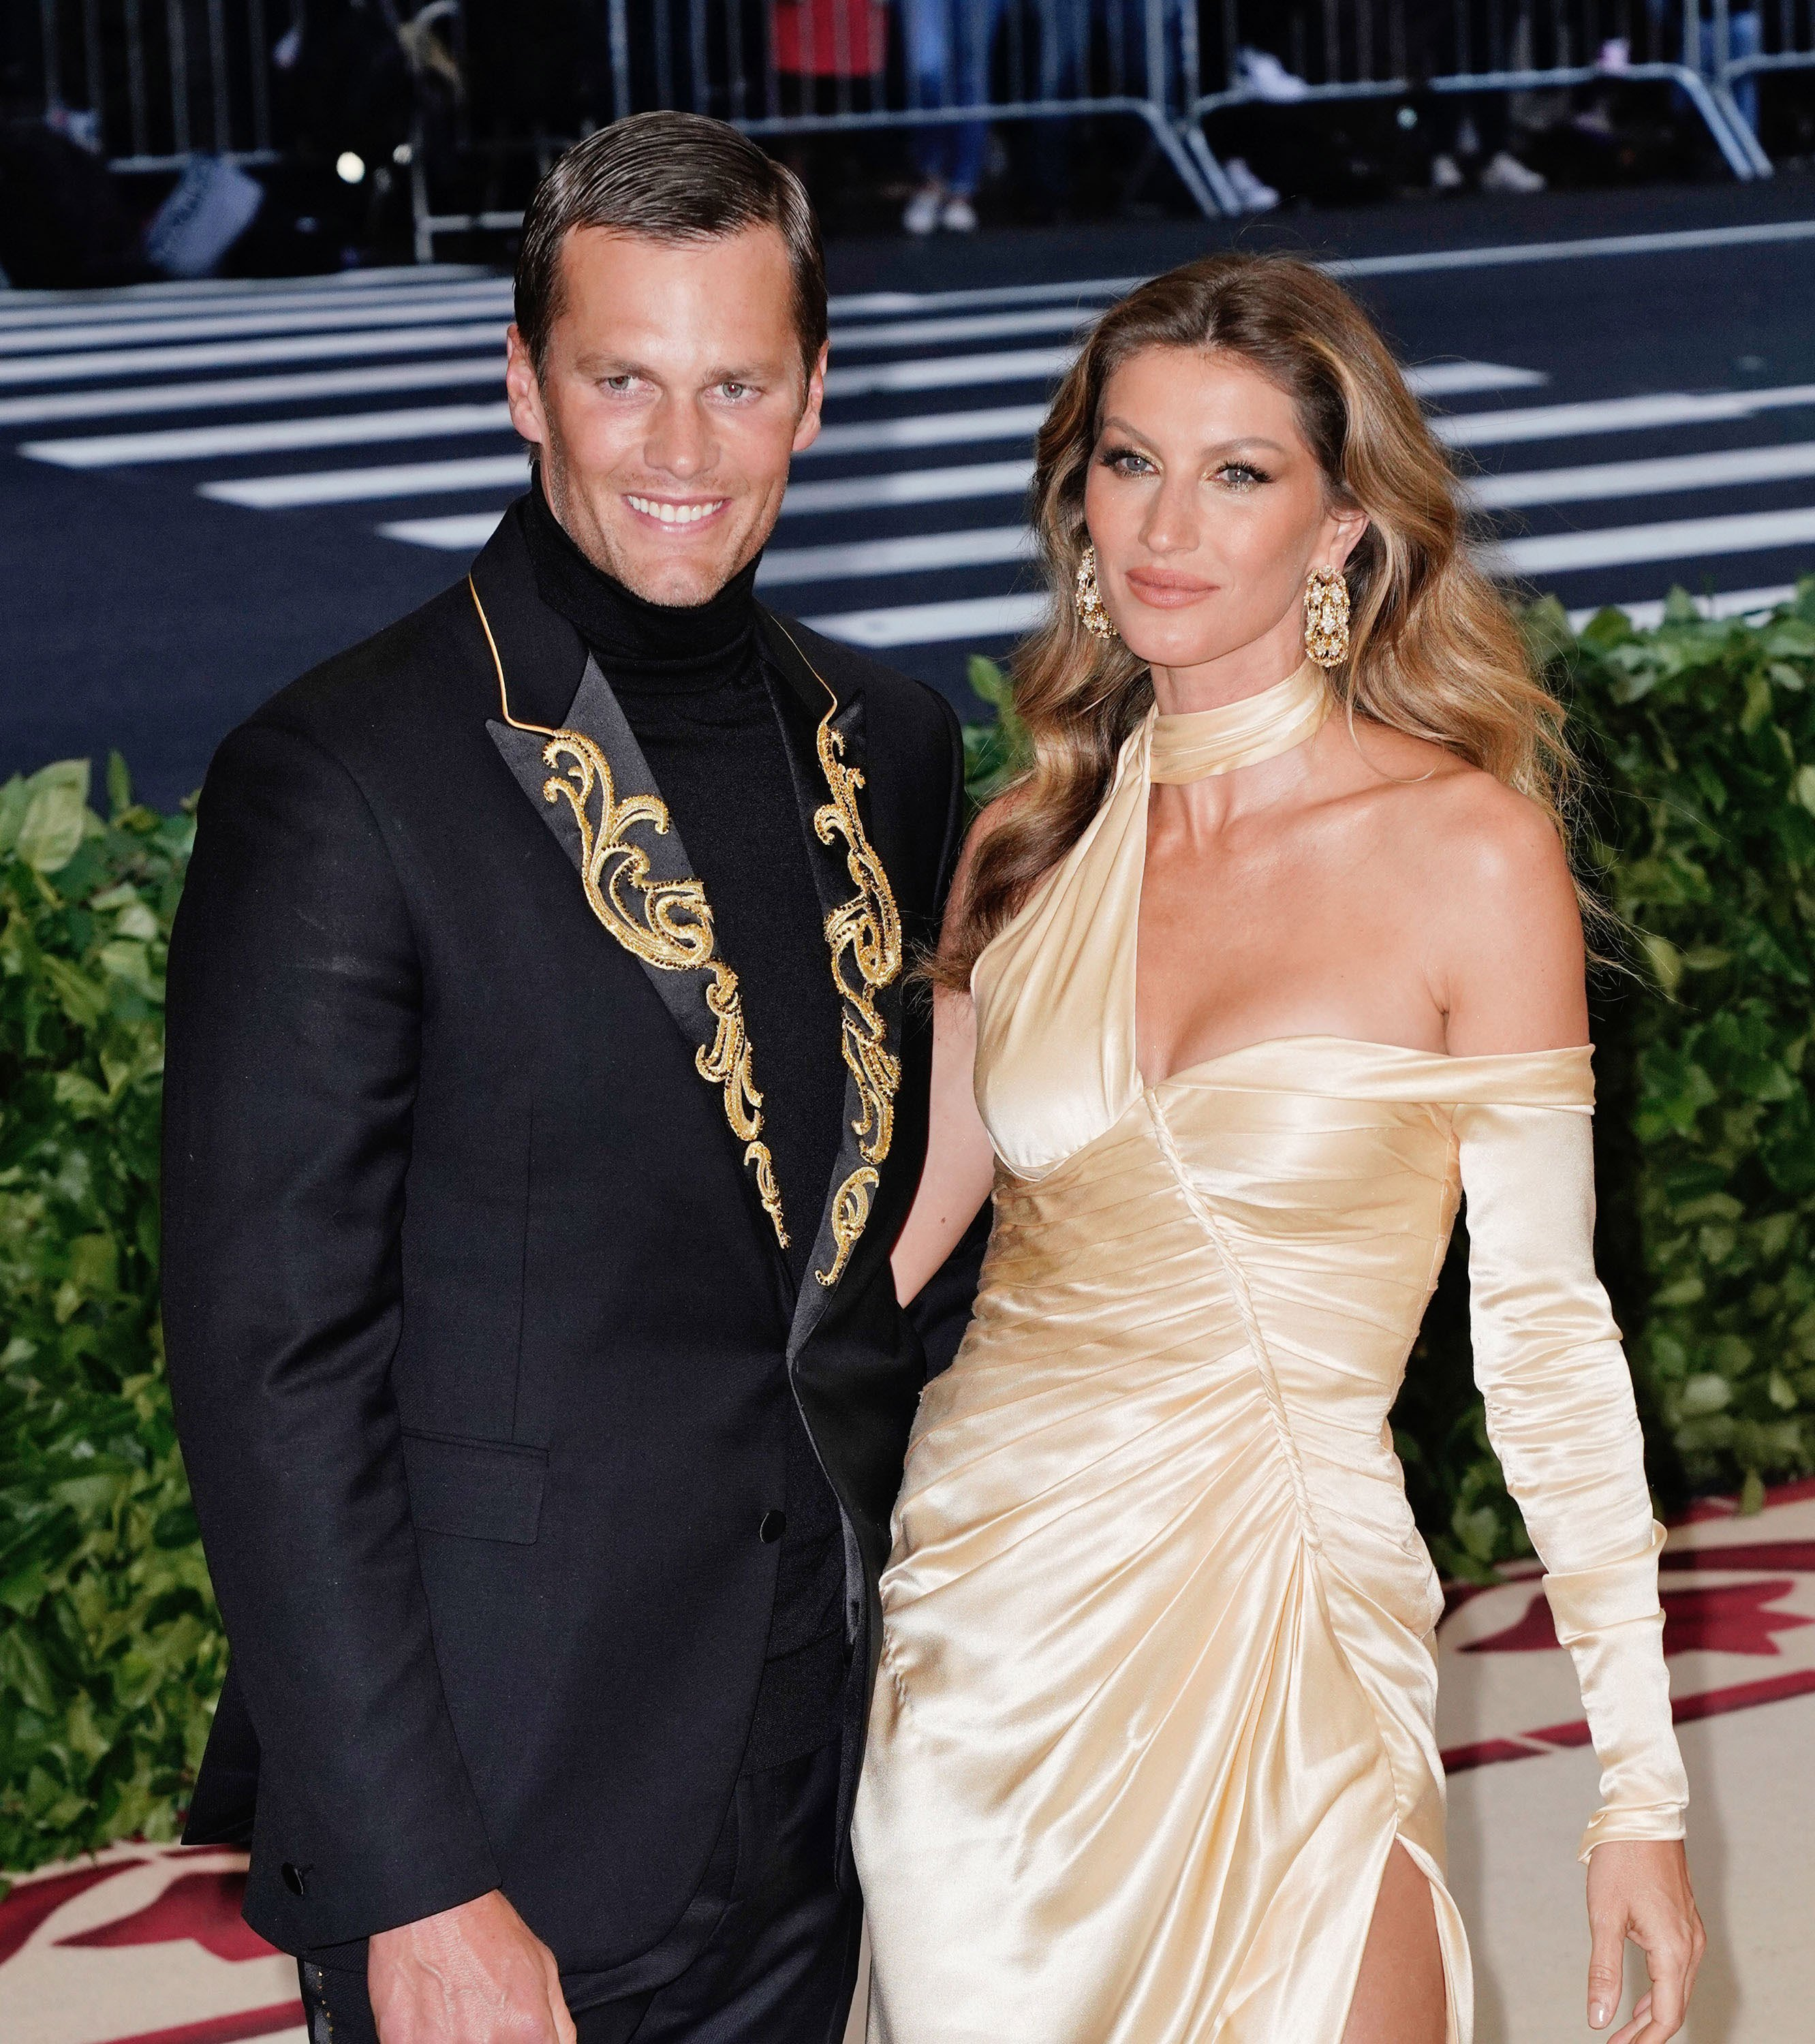 Tom Brady and Gisele Bündchen attends the Heavenly Bodies: Fashion & The Catholic Imagination Costume Institute Gala in New York in May 2018 | Photo: Getty Images